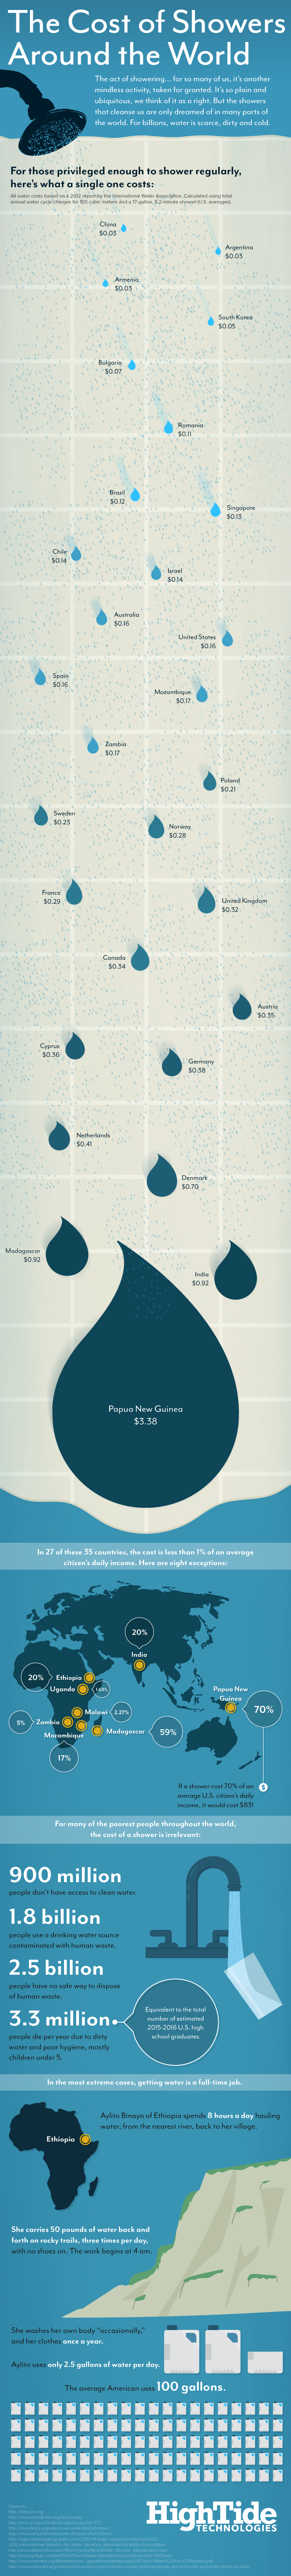 The Cost of Showers Around the World #Infographic